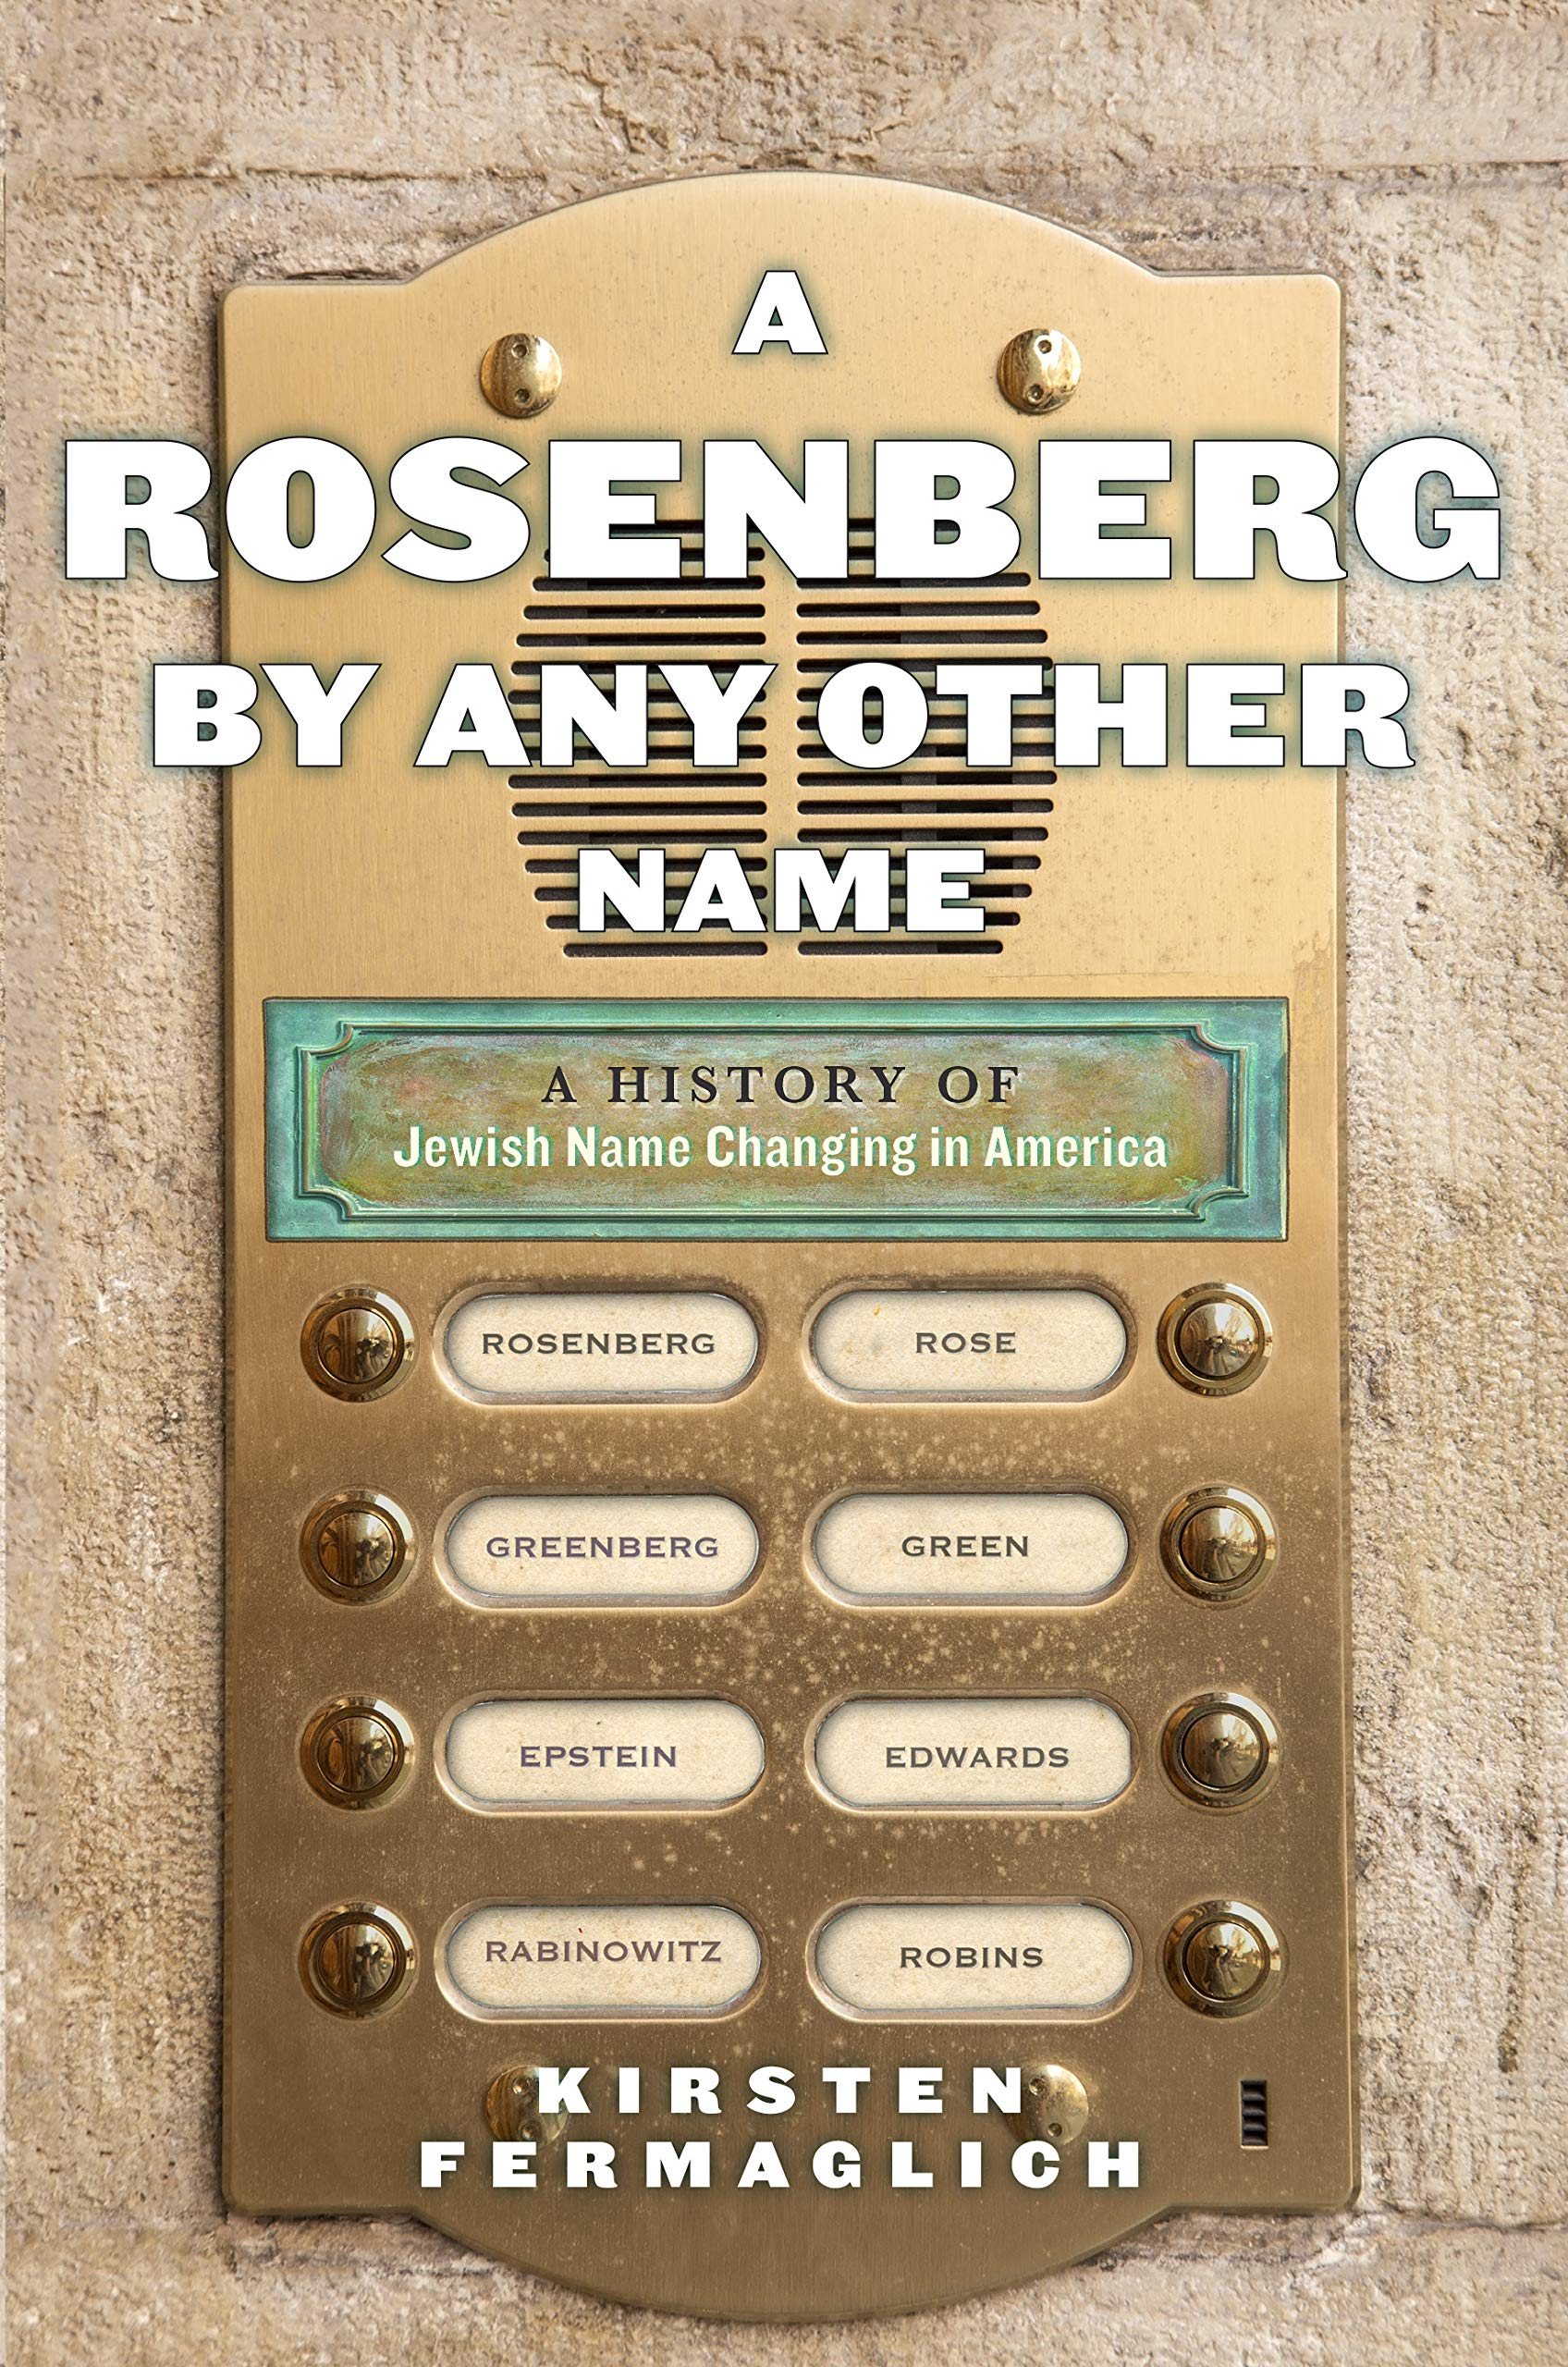 A Rosenberg by Any Other Name A History of Jewish Name Changing in America by Kirsten Fermaglich